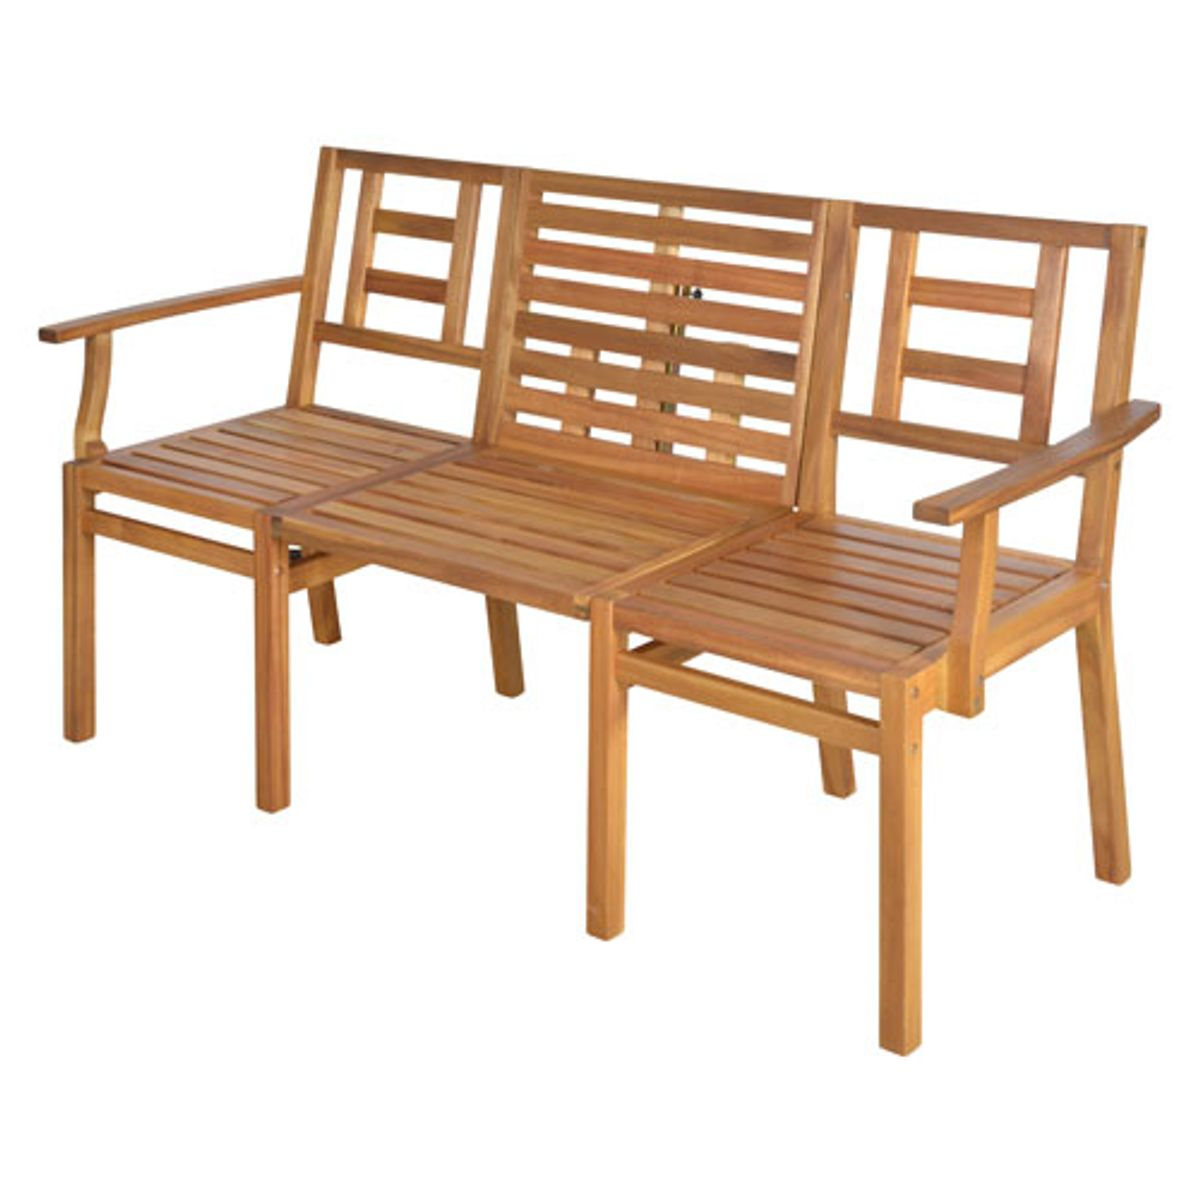 Salon de jardin transformable 2 en 1 table et banc en acacia my balconia decoclico - Salon de jardin en acacia ...